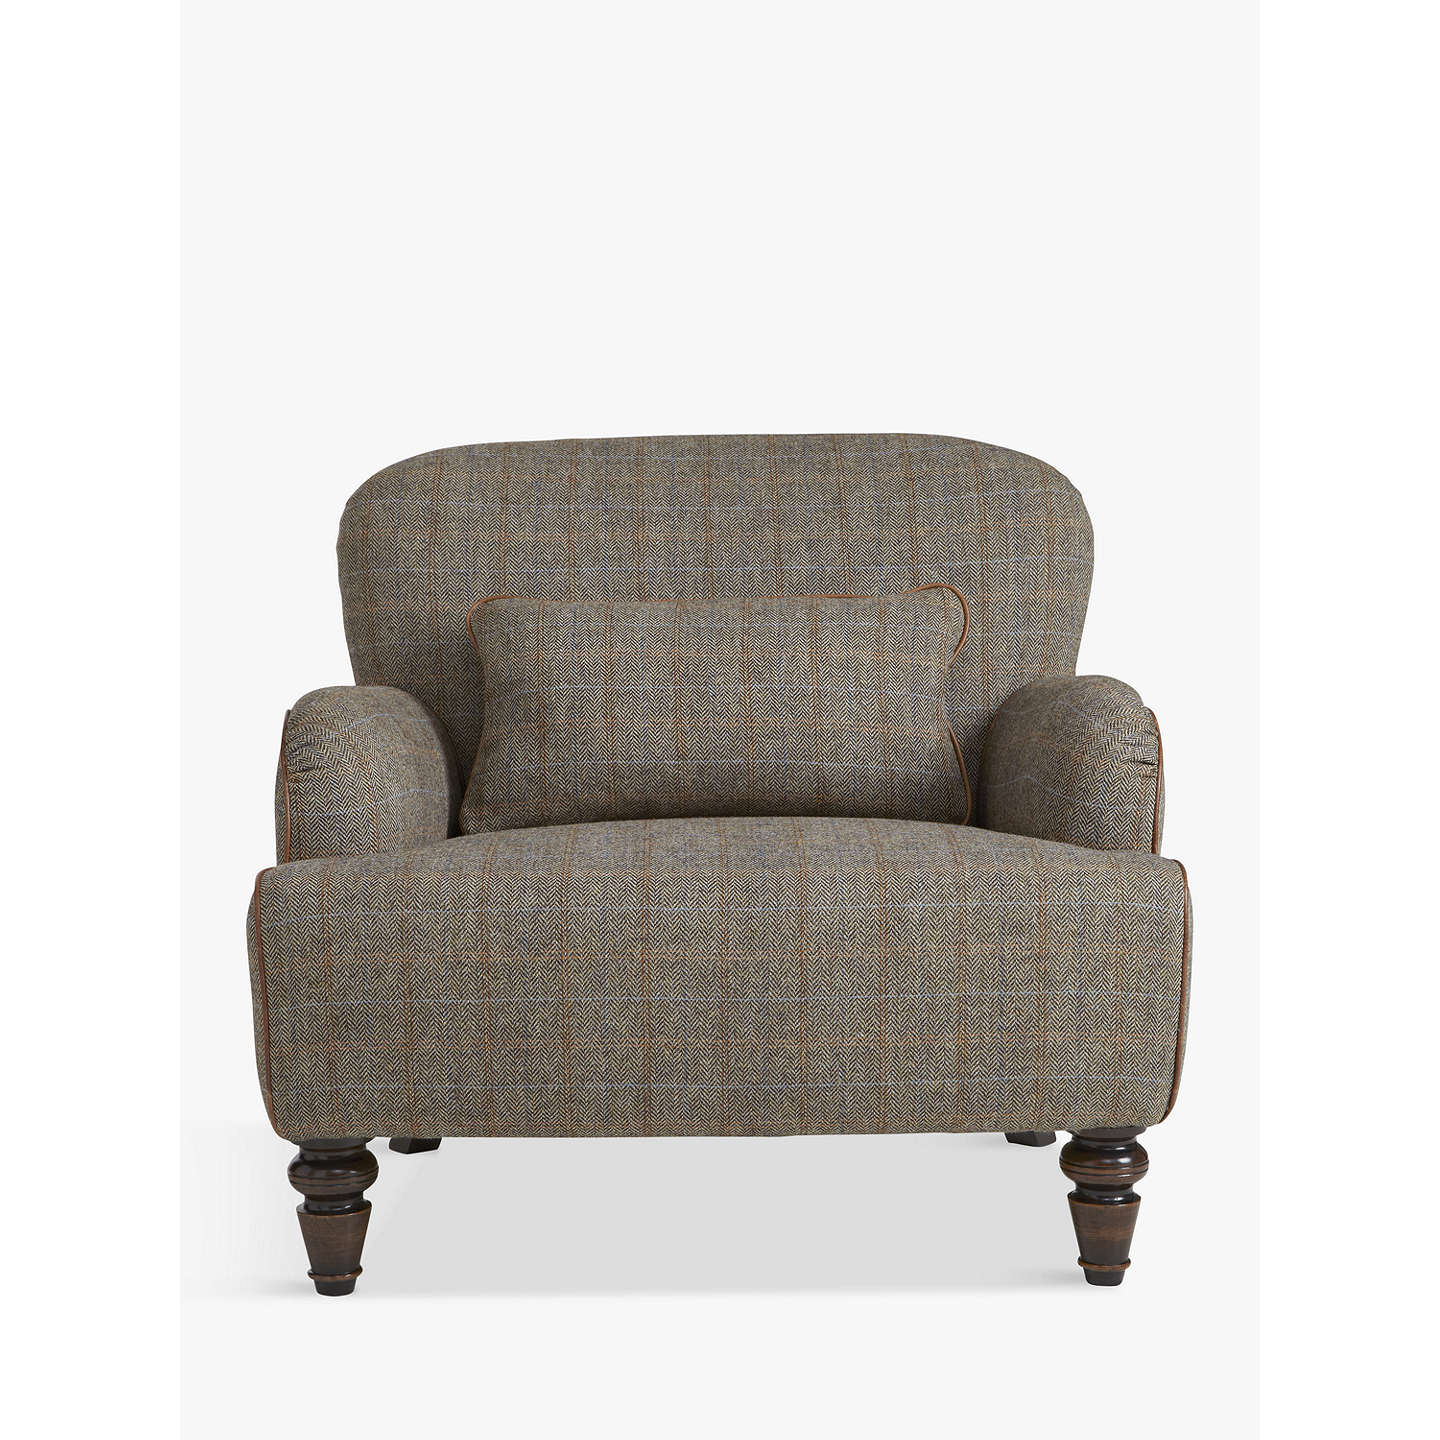 Tetrad Harris Tweed Lewis Armchair Bracken Tan At John